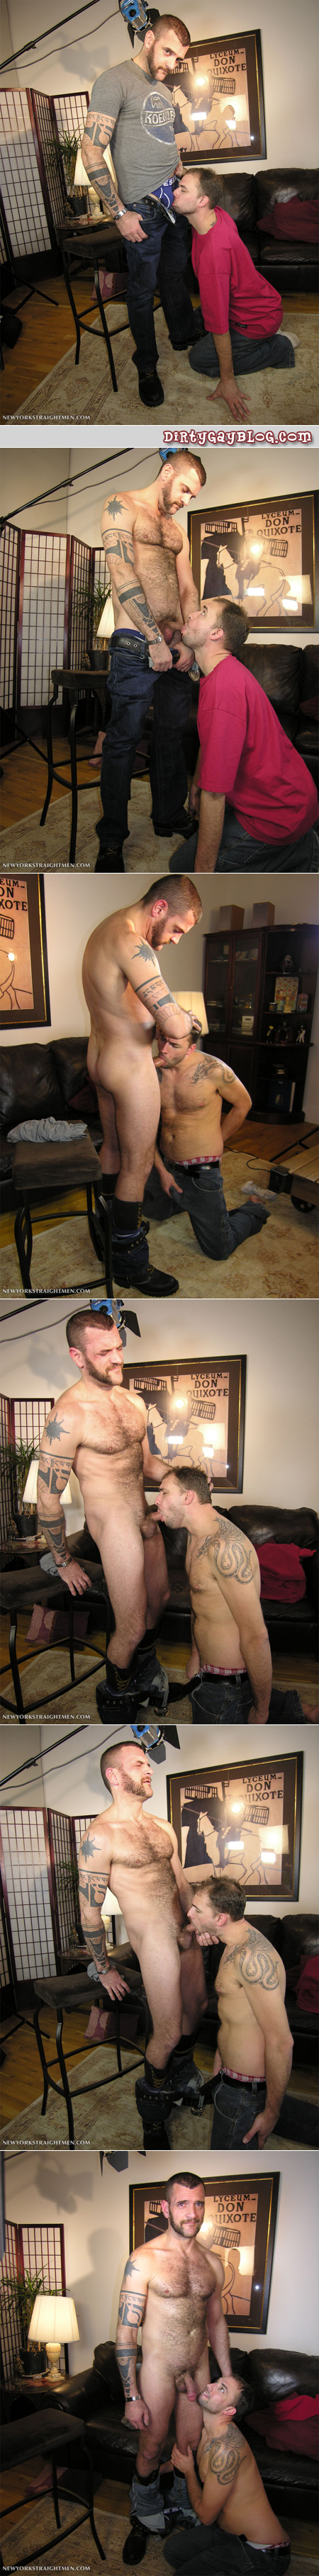 Hairy straight guy with tattoo sleeve and lamb chop sideburns goes gay for pay.